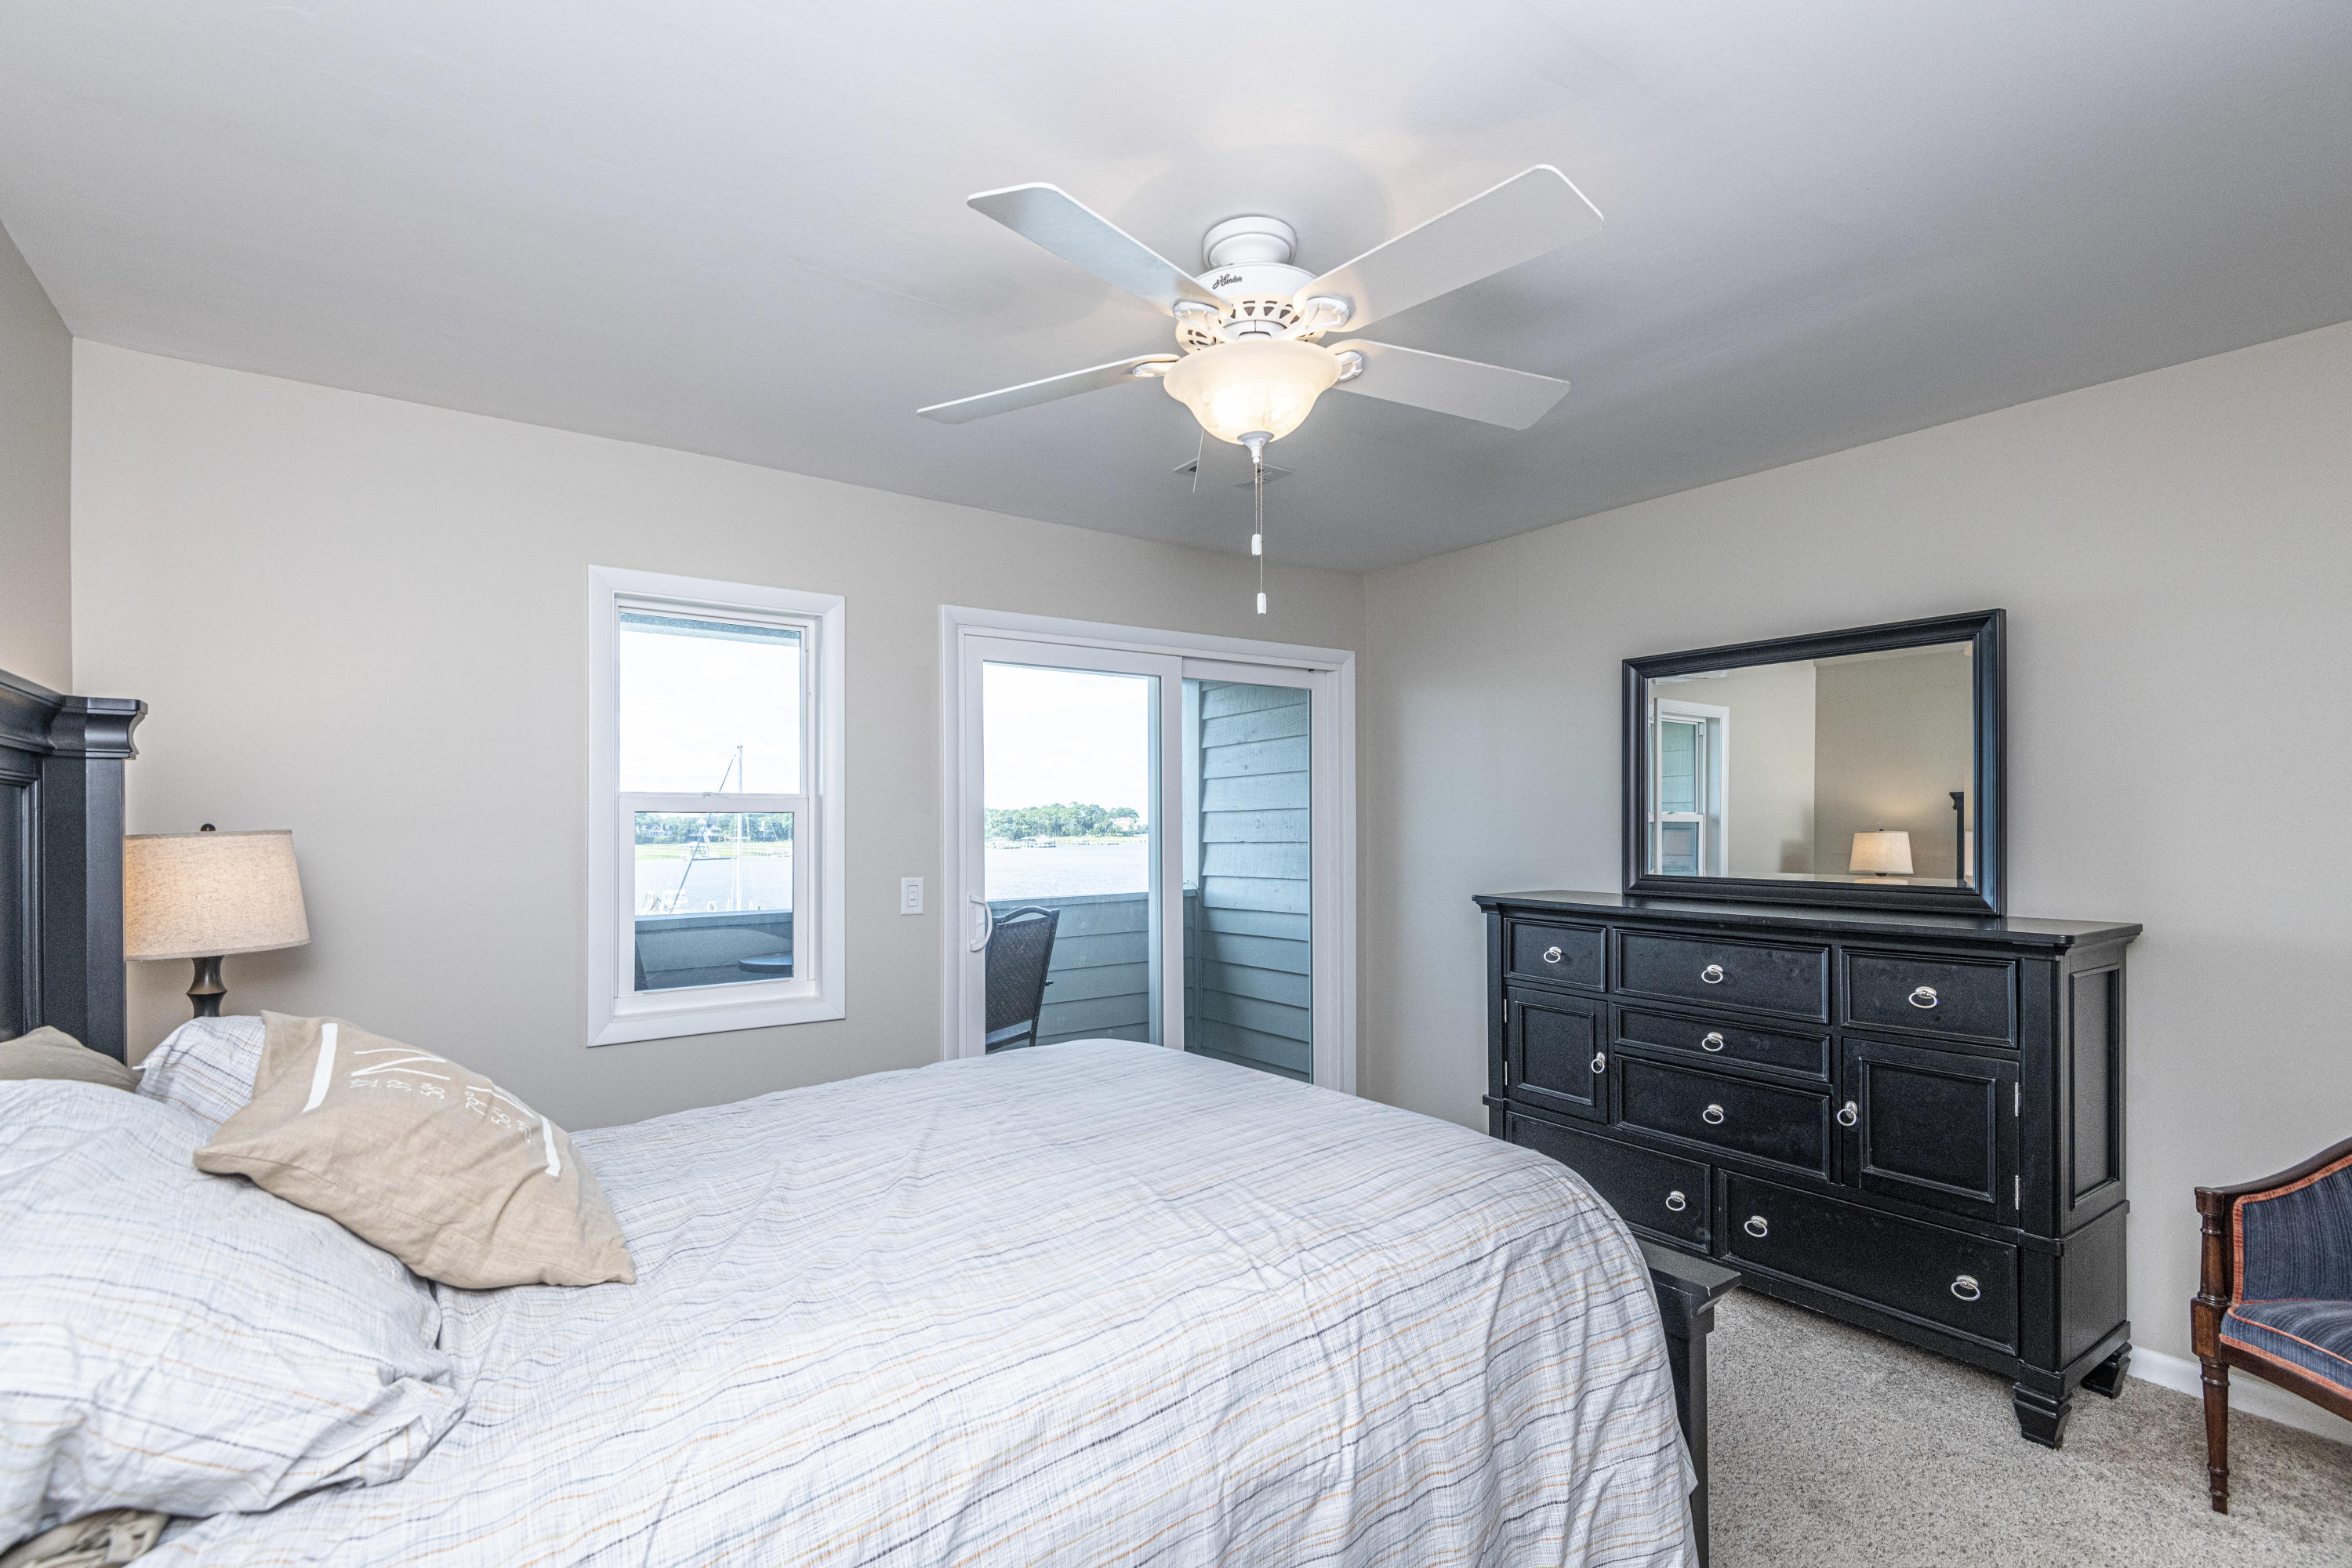 Mariners Cay Homes For Sale - 71 Mariners Cay, Folly Beach, SC - 38